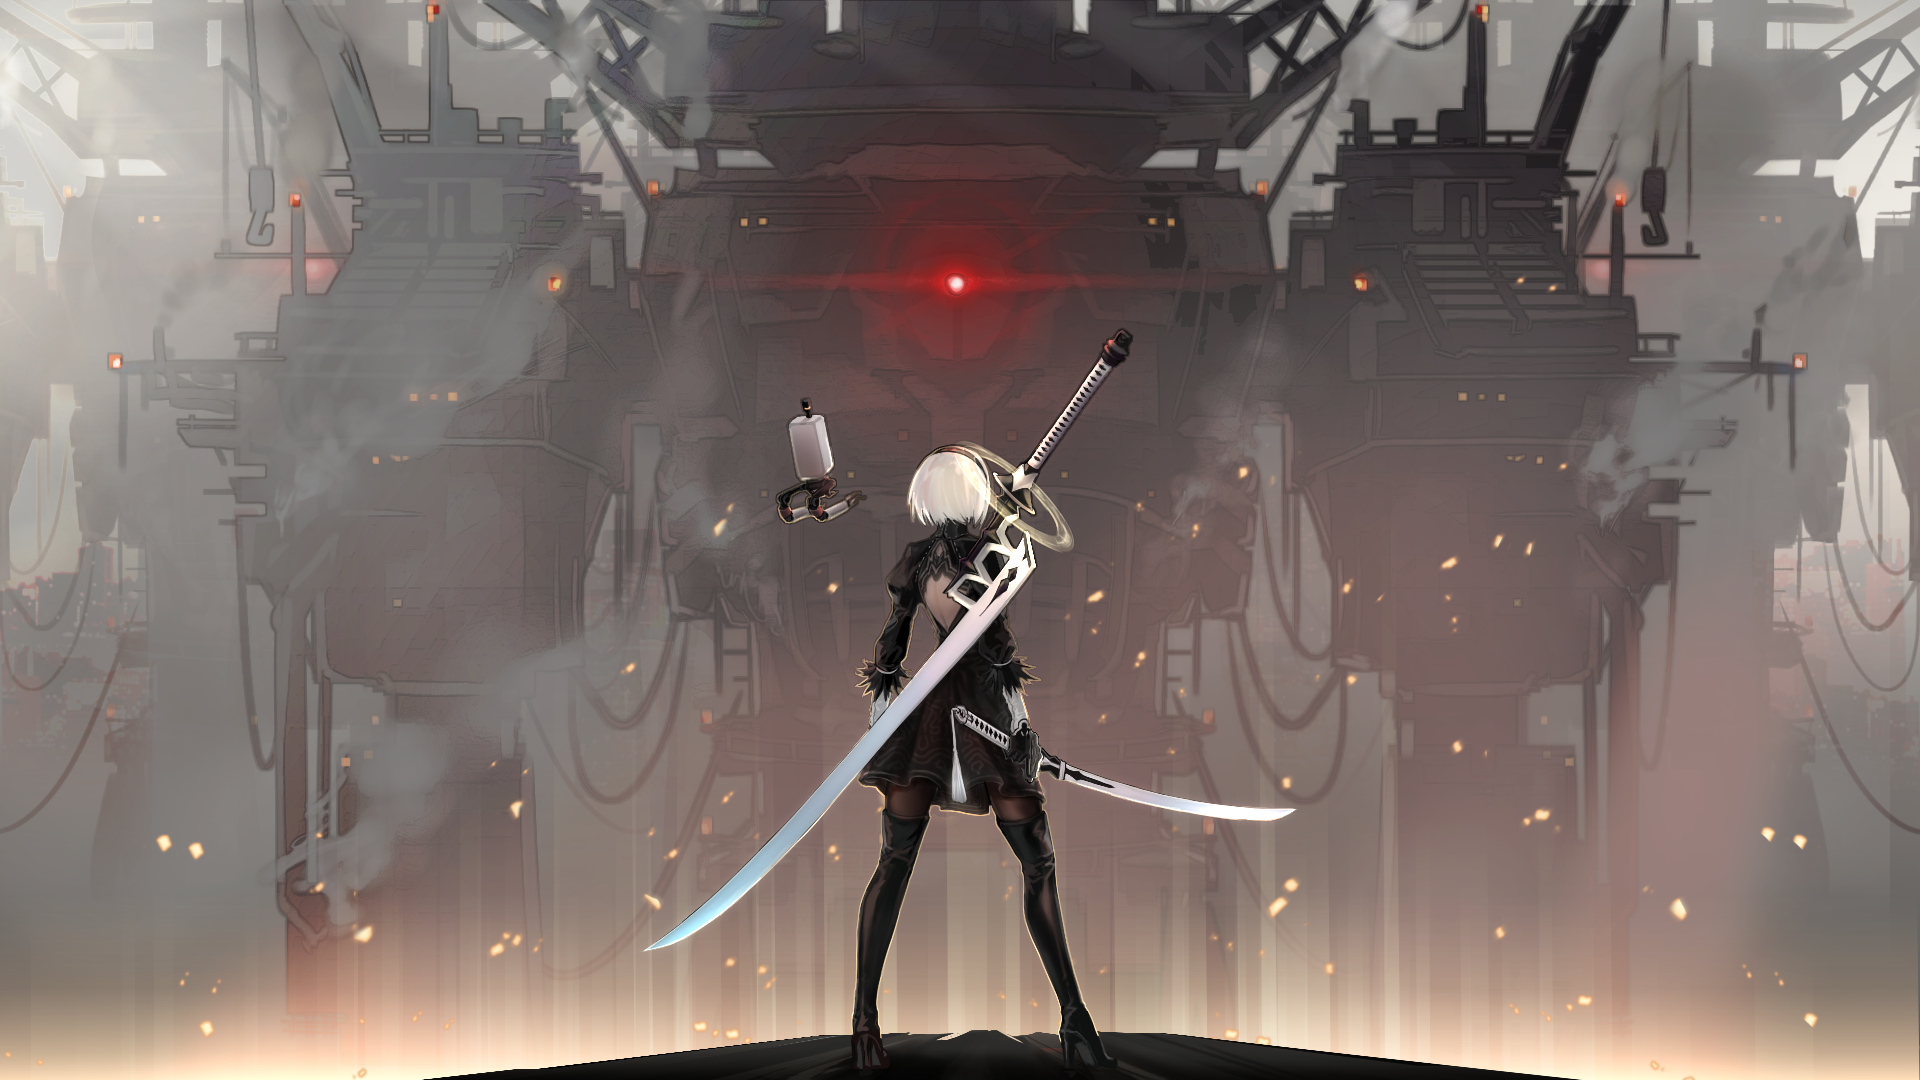 232 Nier Automata Hd Wallpapers Background Images Wallpaper Abyss